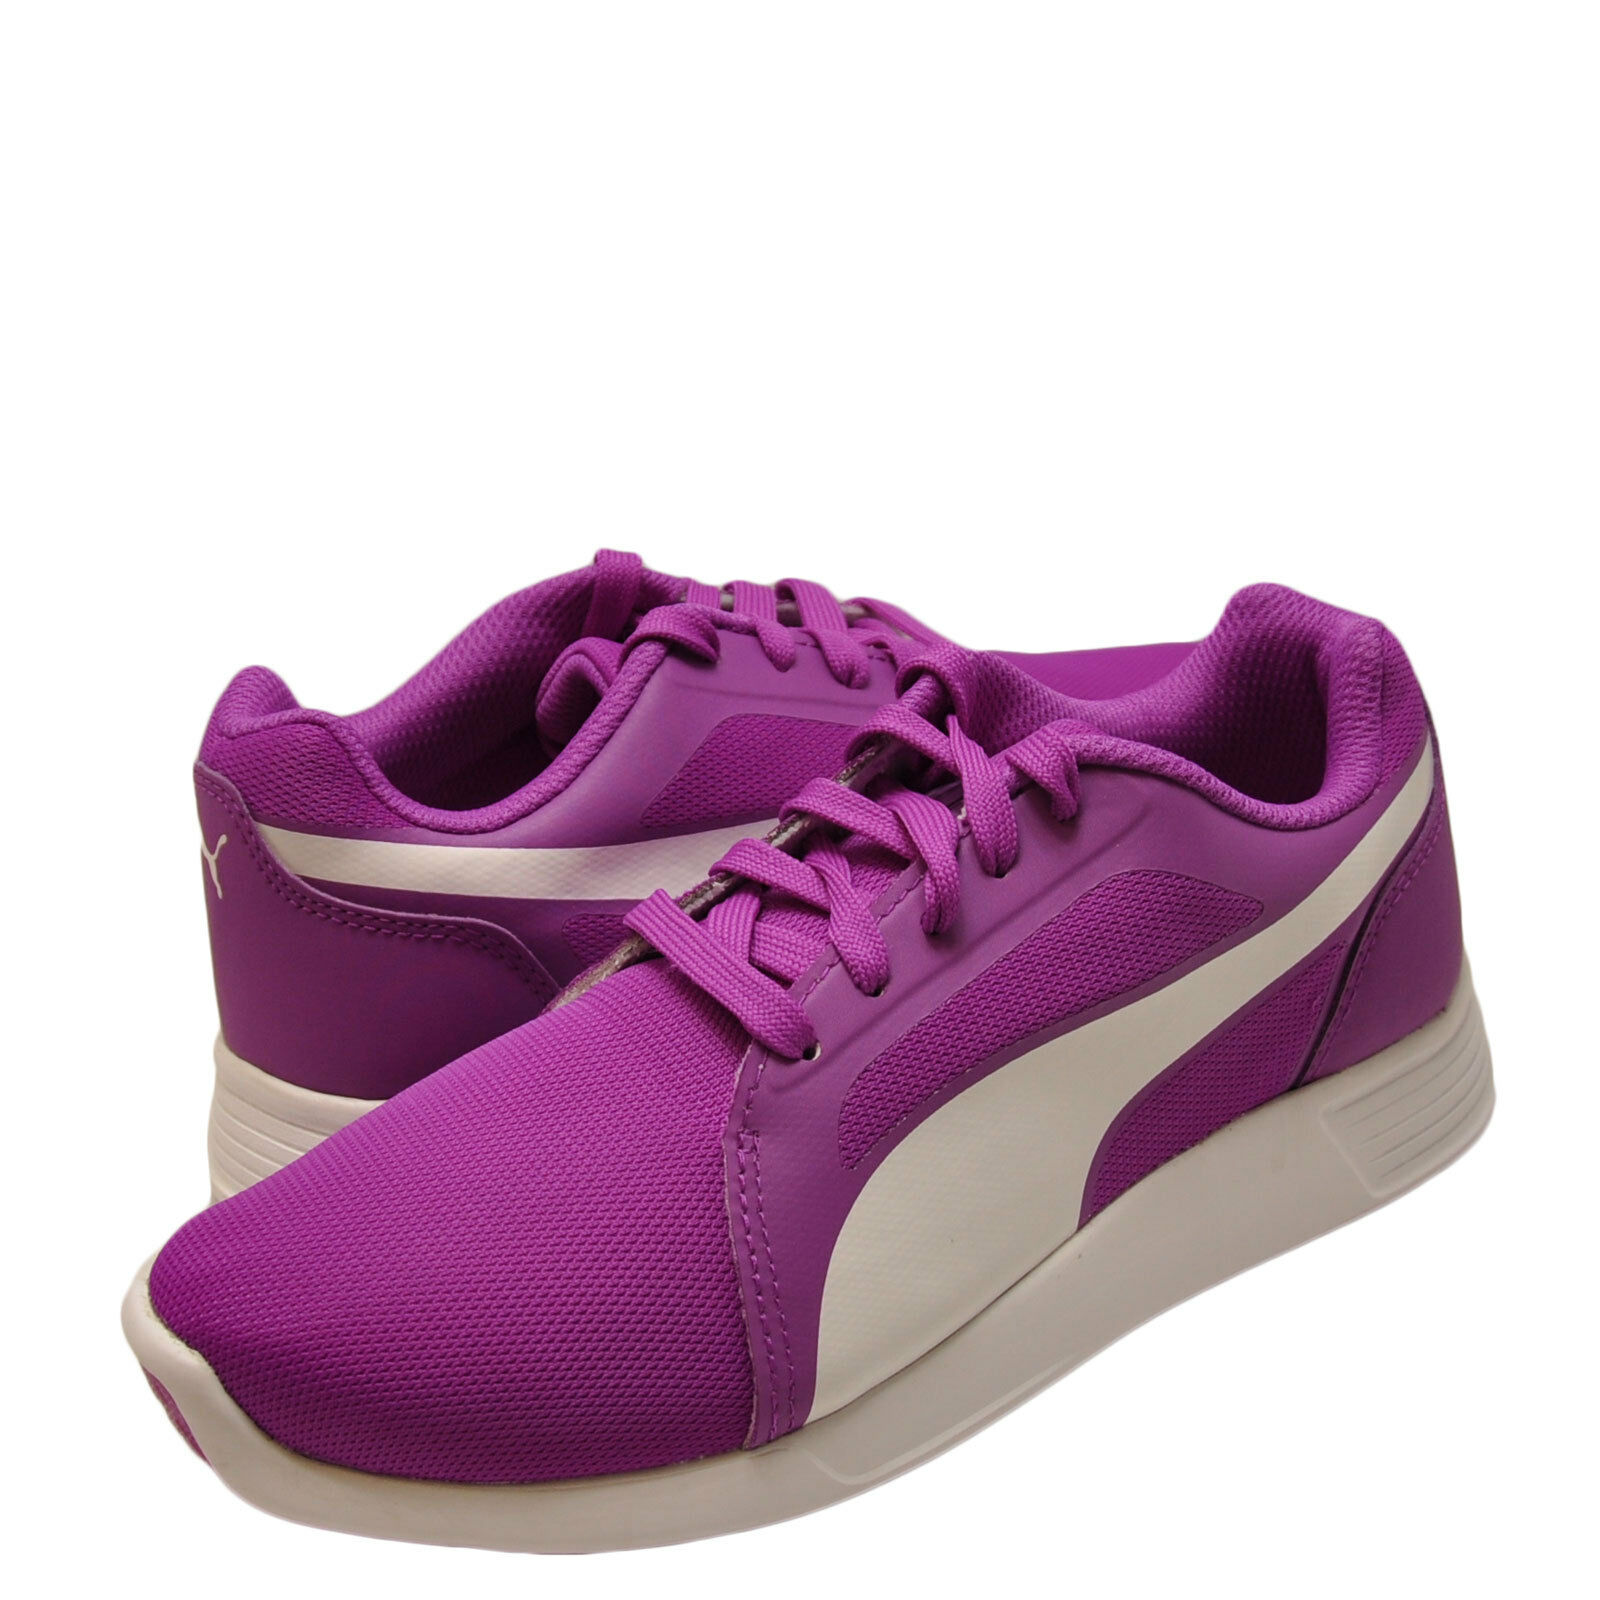 femmes Shoe PUMA ST Trainer Evo Sneakers 360963-07 Violet Cactus Flower New